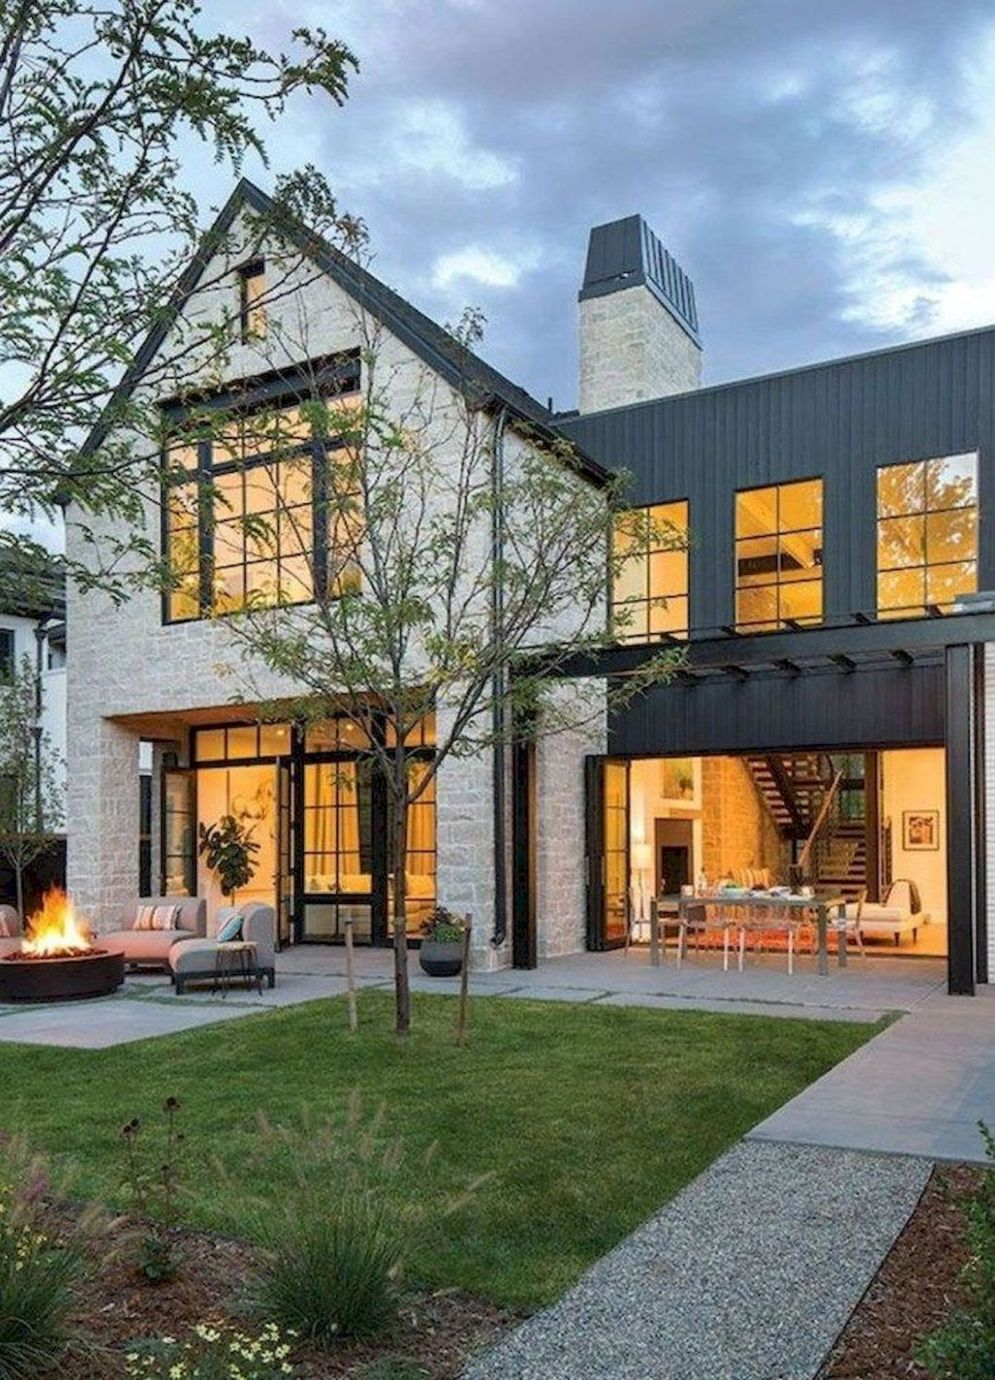 Countryside house with modern Farmhouse exterior design bringing up the traditional style in new classy look Image 19